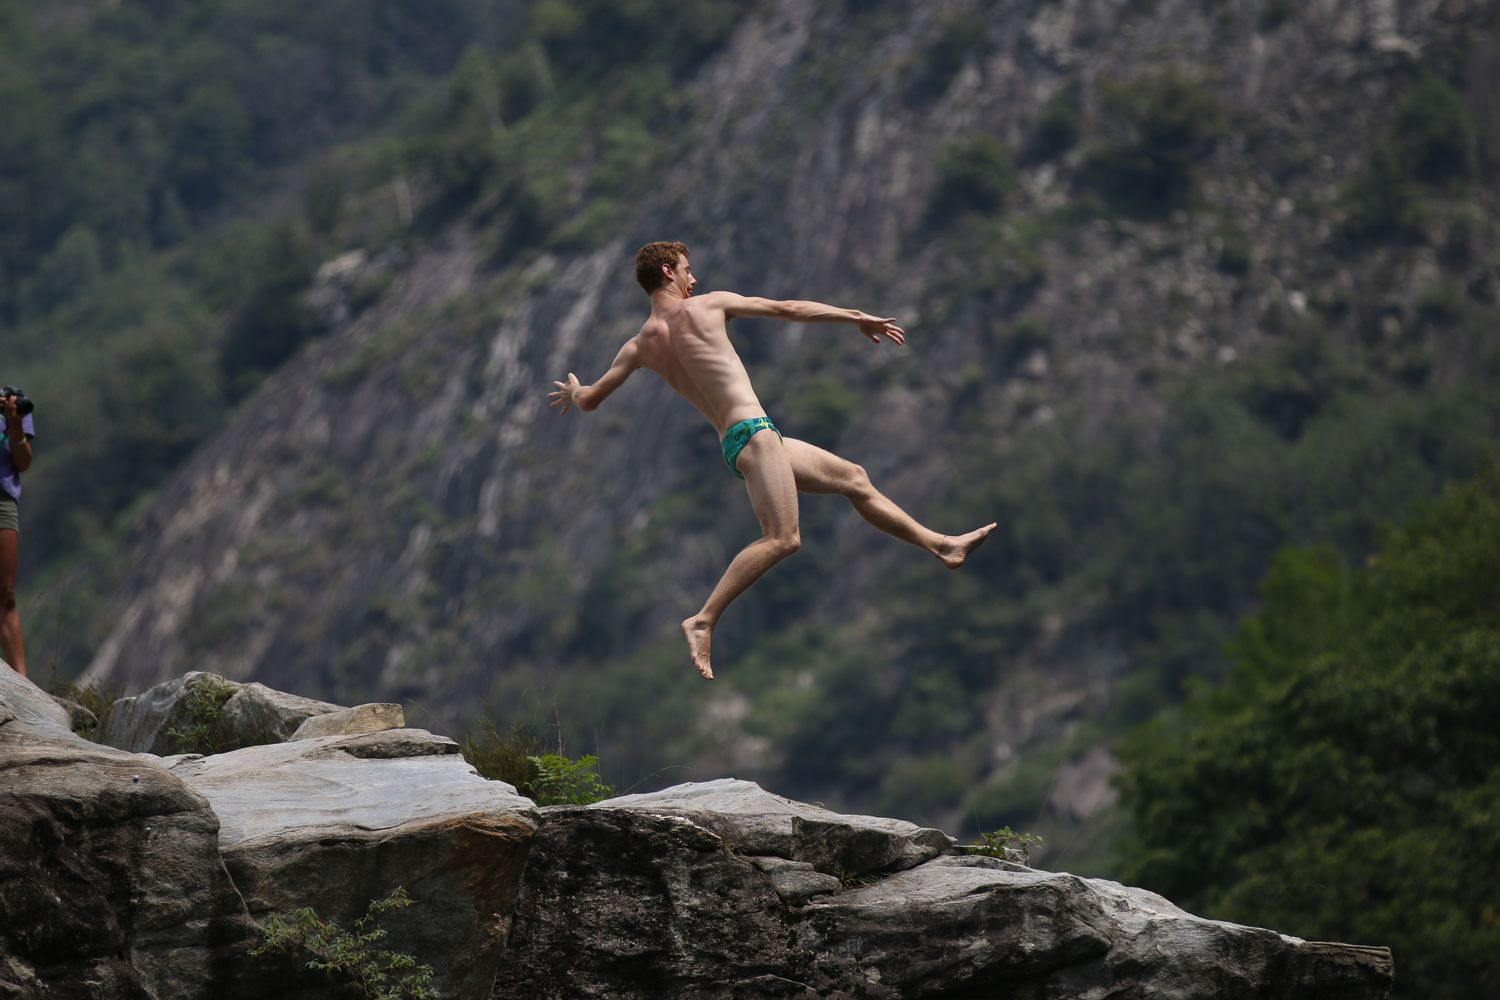 Liam Atkins (AUS), International Cliff Diving Championship 2017